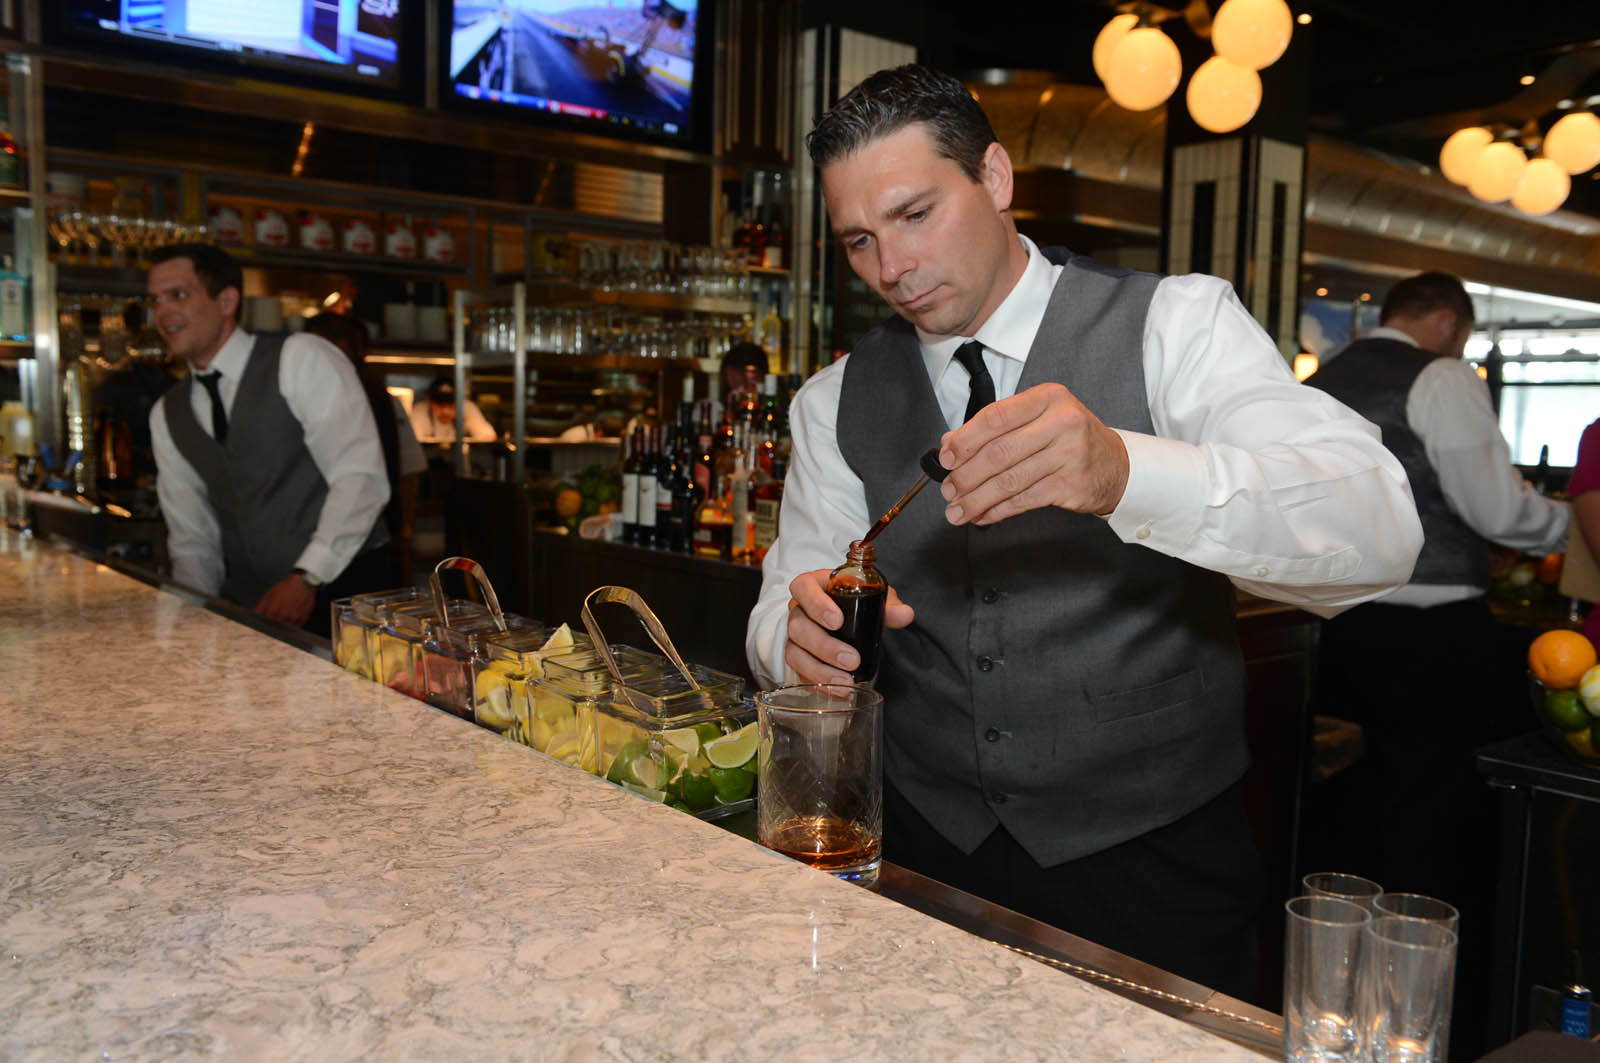 A bartender making a drink behind the bar